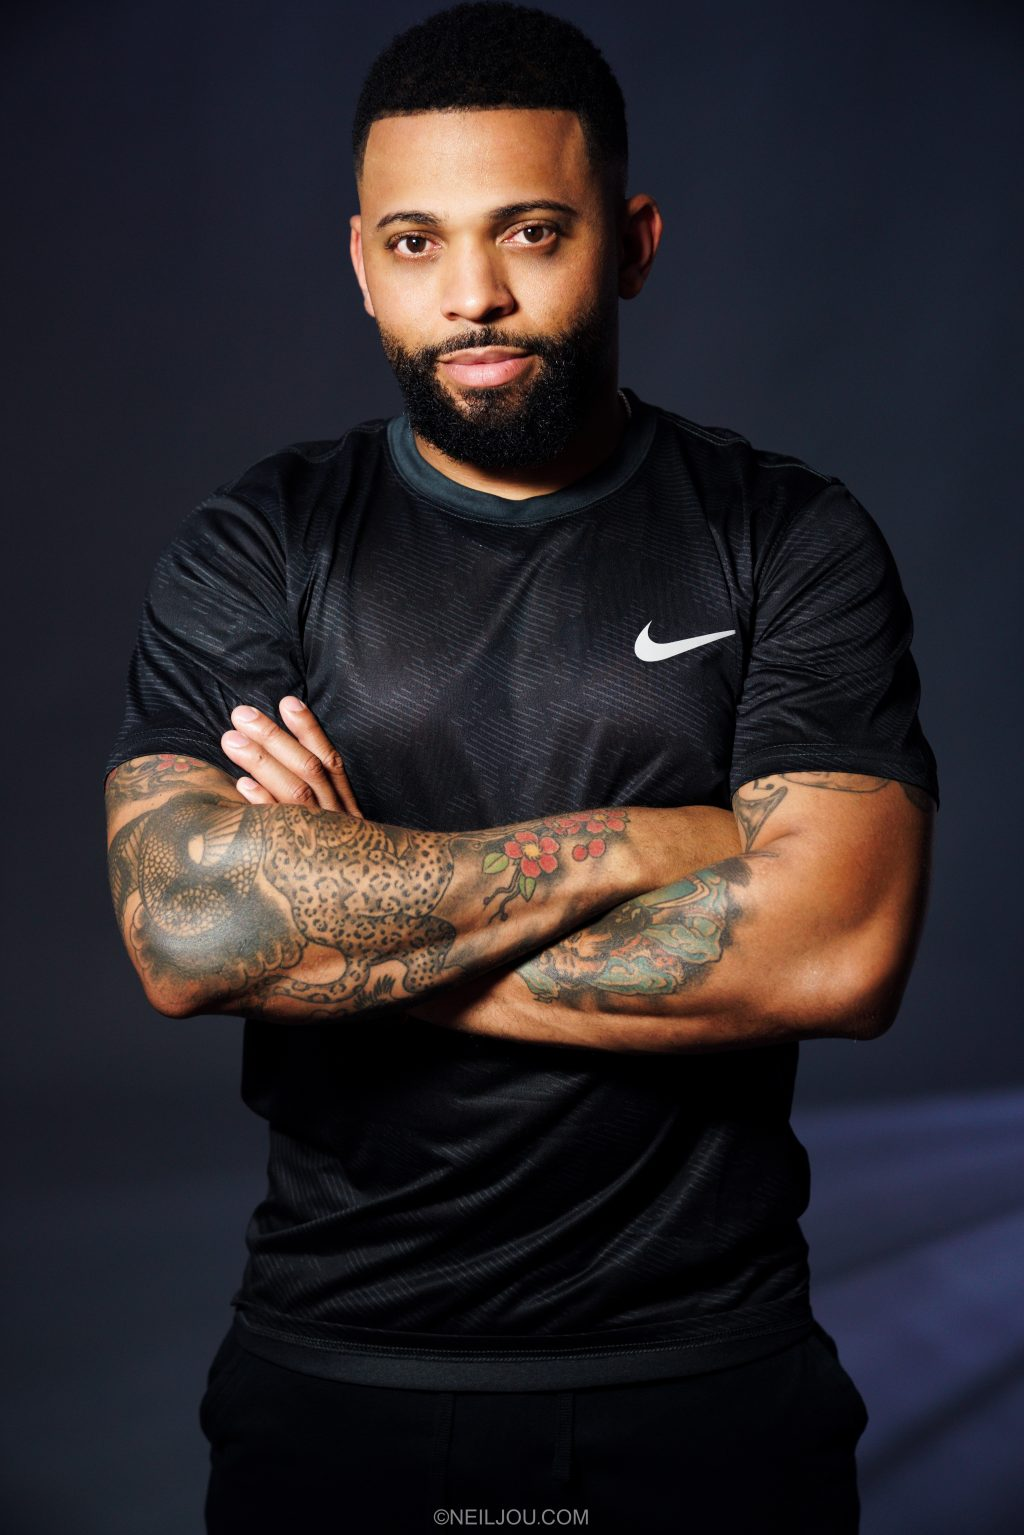 Personal Trainer Houston, Texas - Archibald Elliott